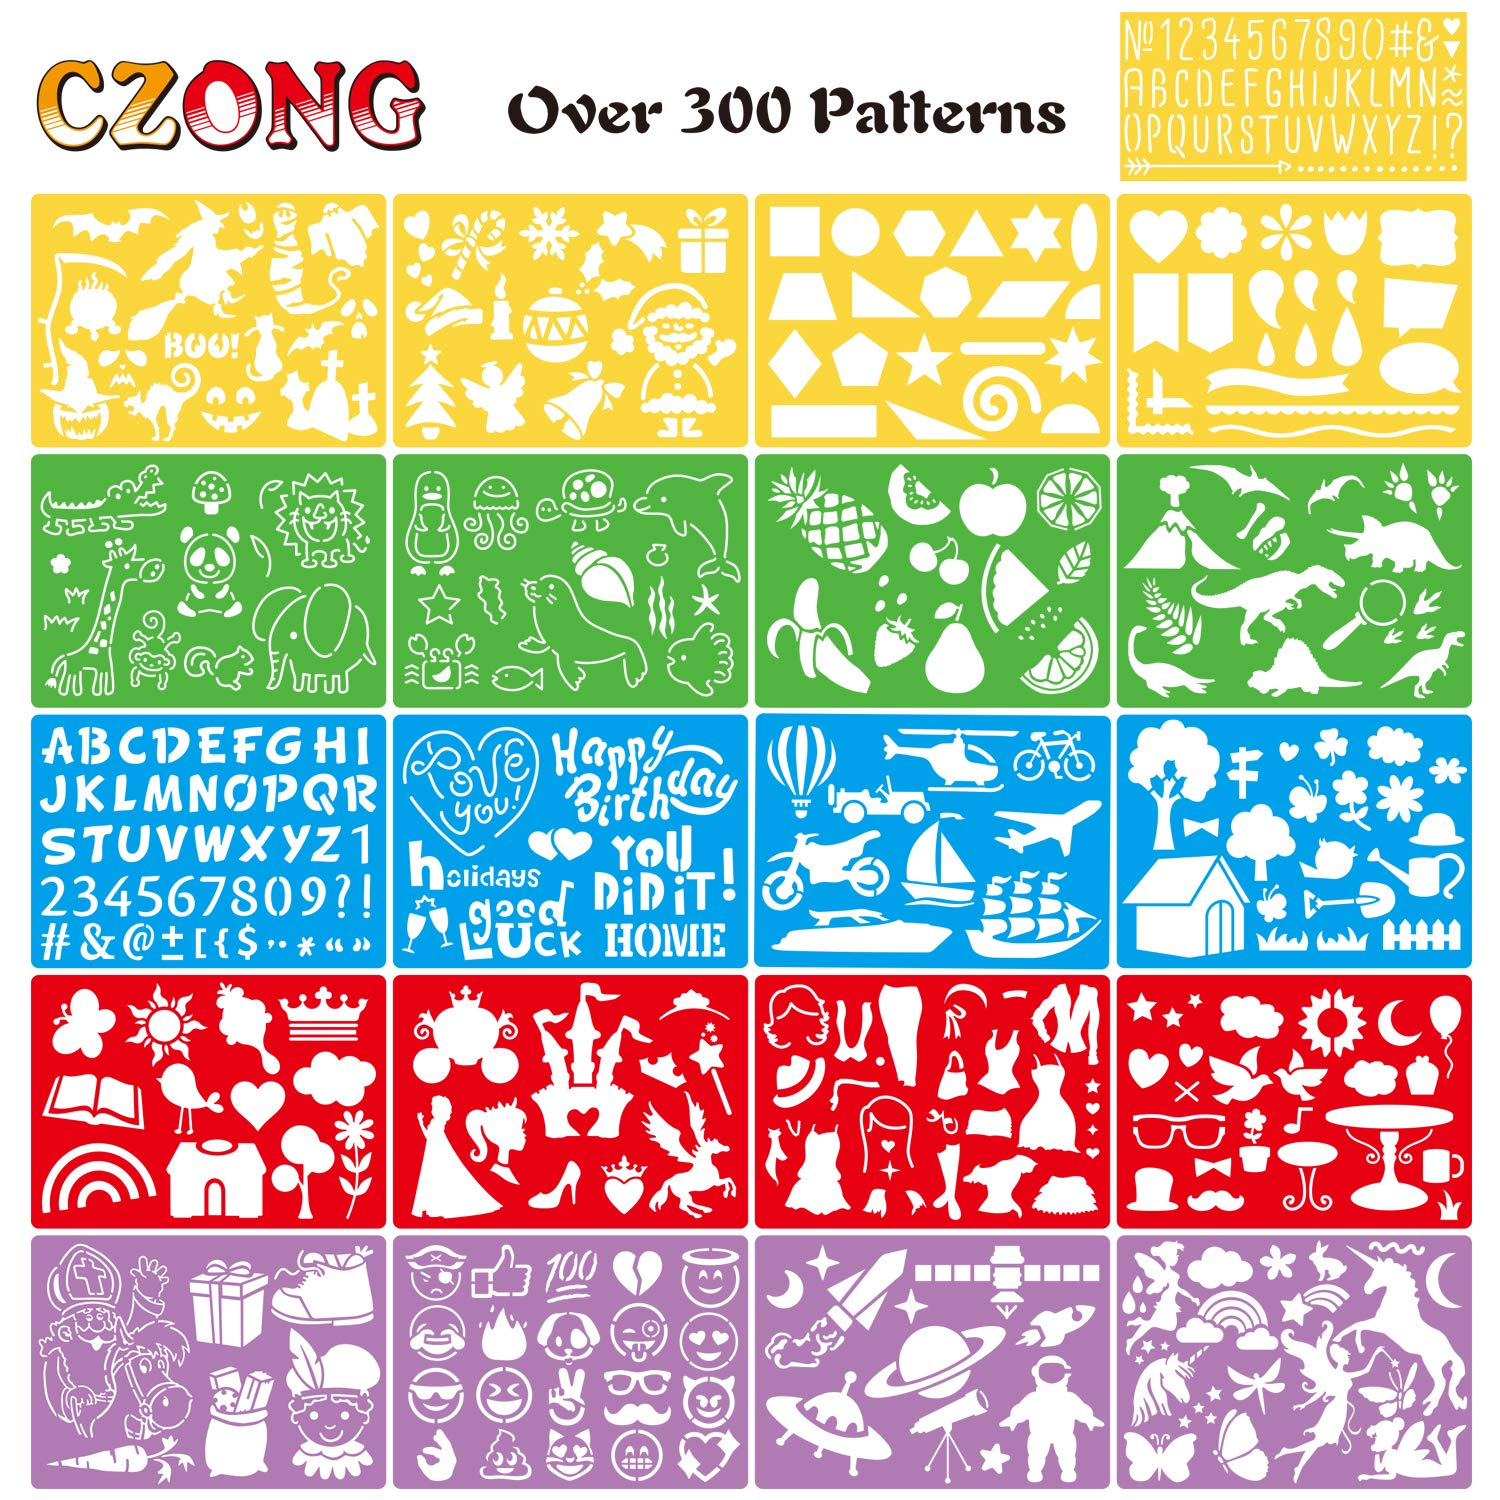 CZONG 21 Pieces Drawing Stencils Set for Kids Over 300 Different Patterns to Draw Imaginative Children's Stories , Washable Craft/Random Colors Bullet Journal Stencil with 1 Storage Bag